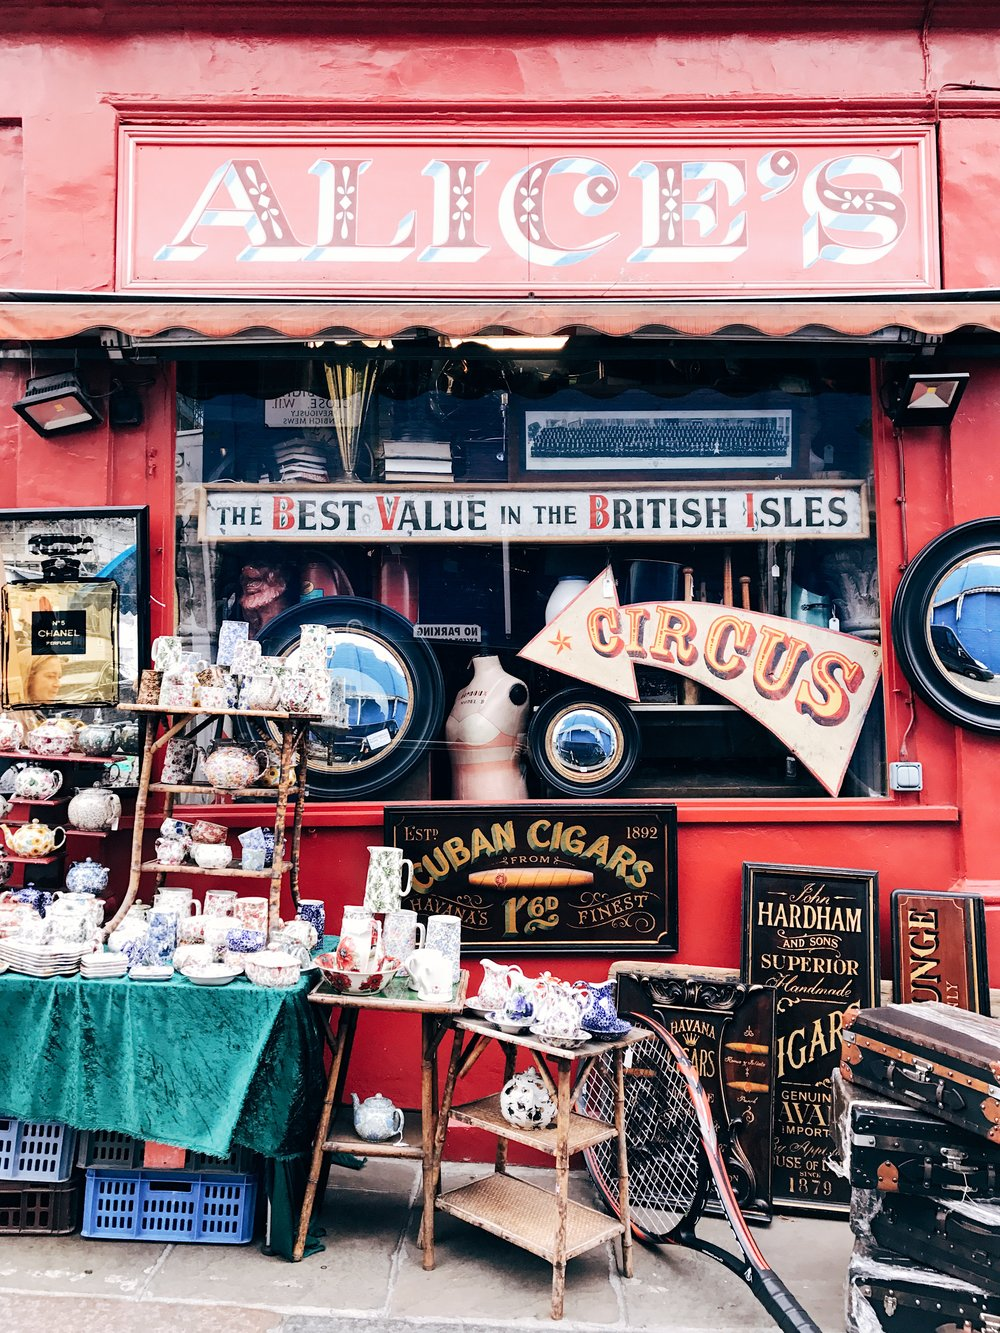 Image: Reasons to Visit London - Many Images to Inspire You to Visit London - Portobello Road